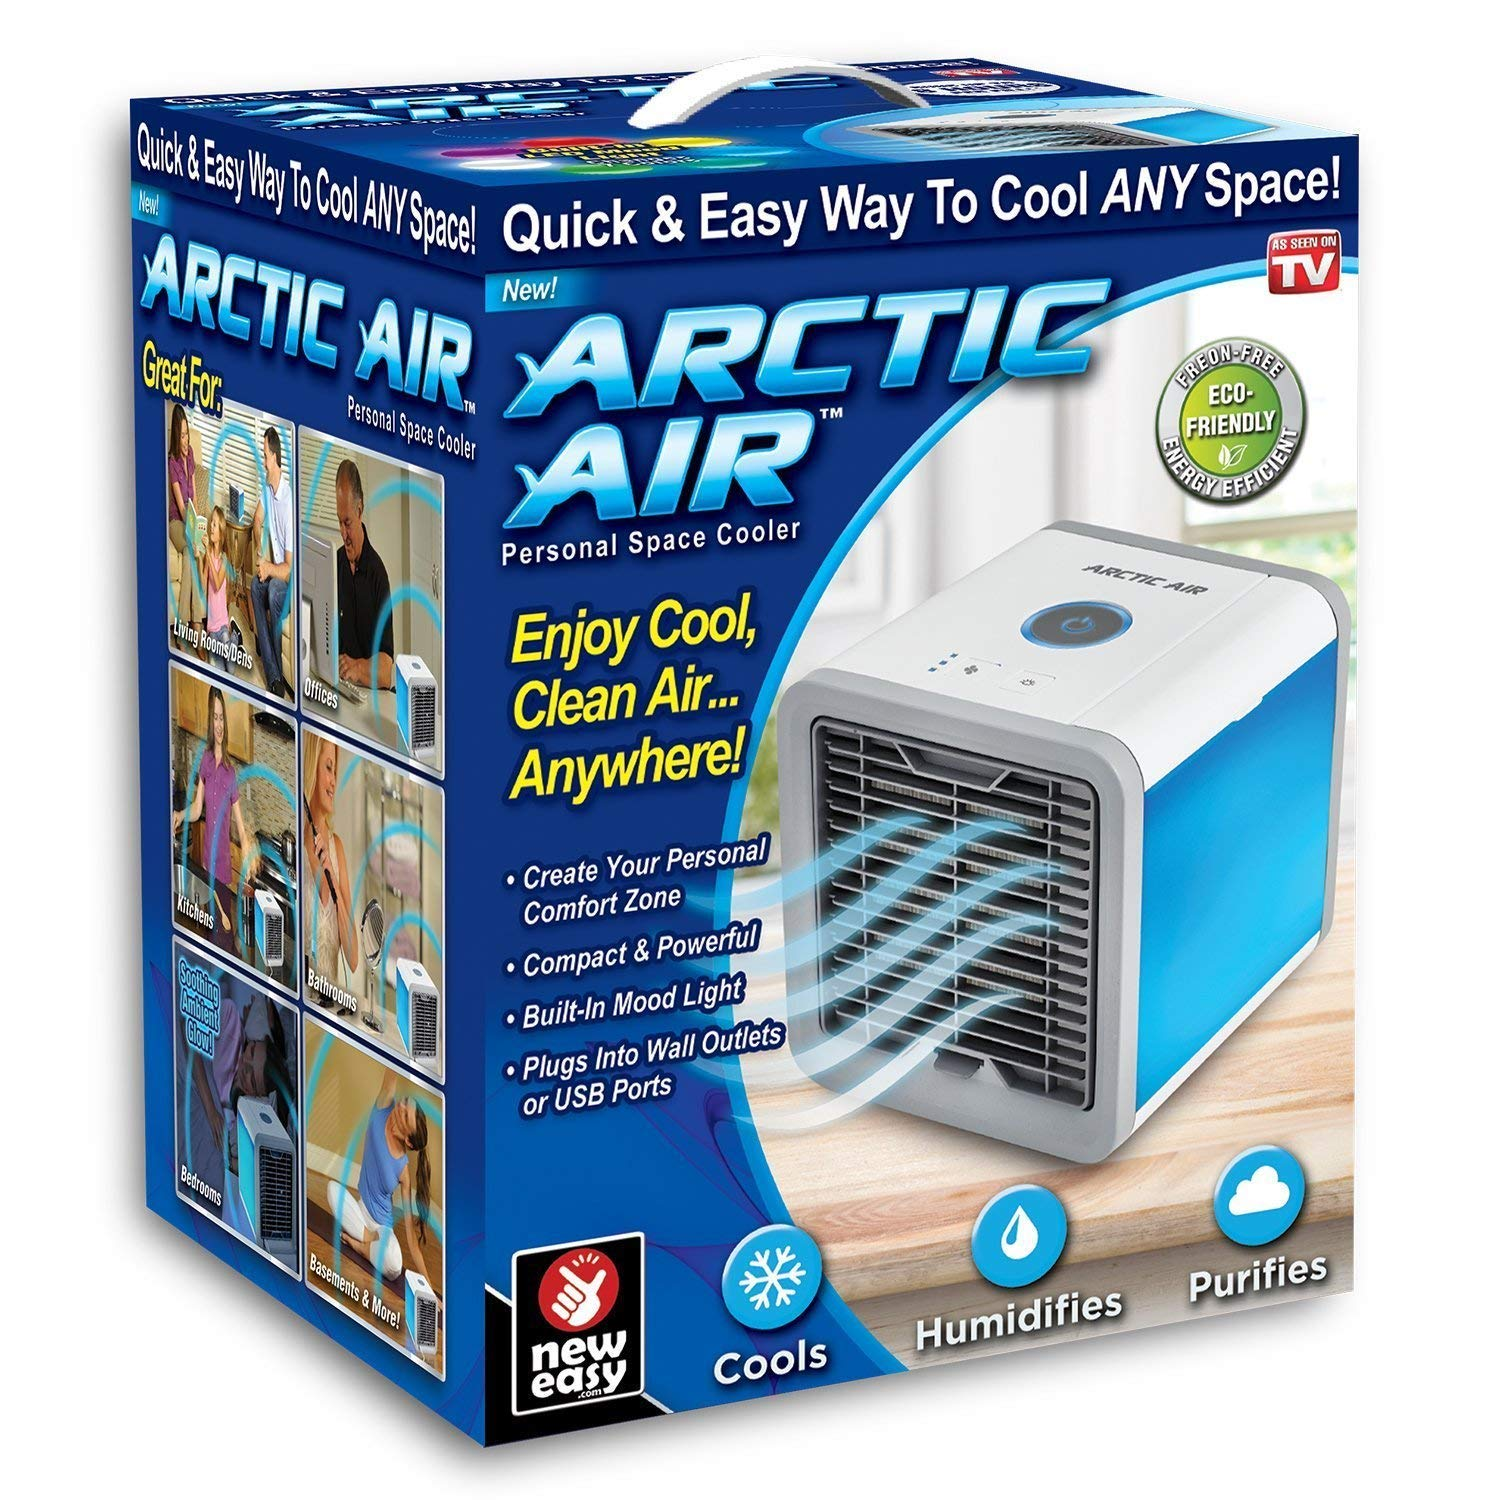 Arctic Air Personal Space Cooler, 3 in 1 USB Mini Portable Air Conditioner | The Quick & Easy Way to Cool Any Space, As Seen On TV